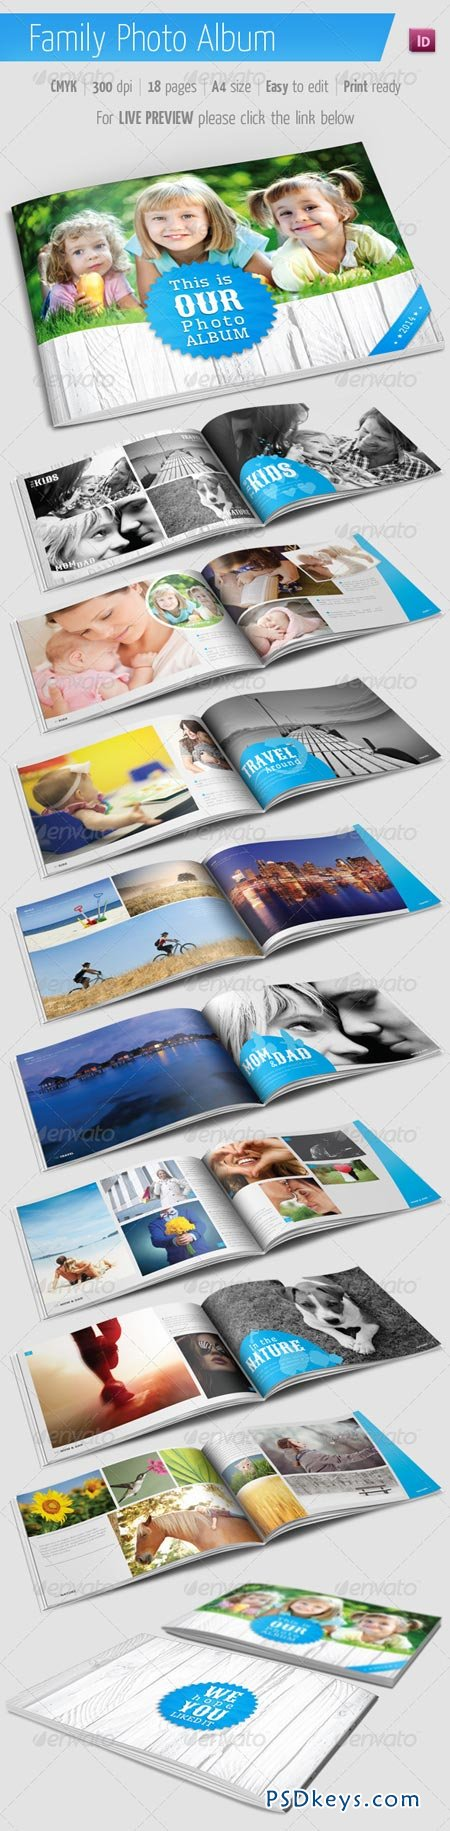 Family Photo Album for Indesign 5748172 » Free Download Photoshop ...